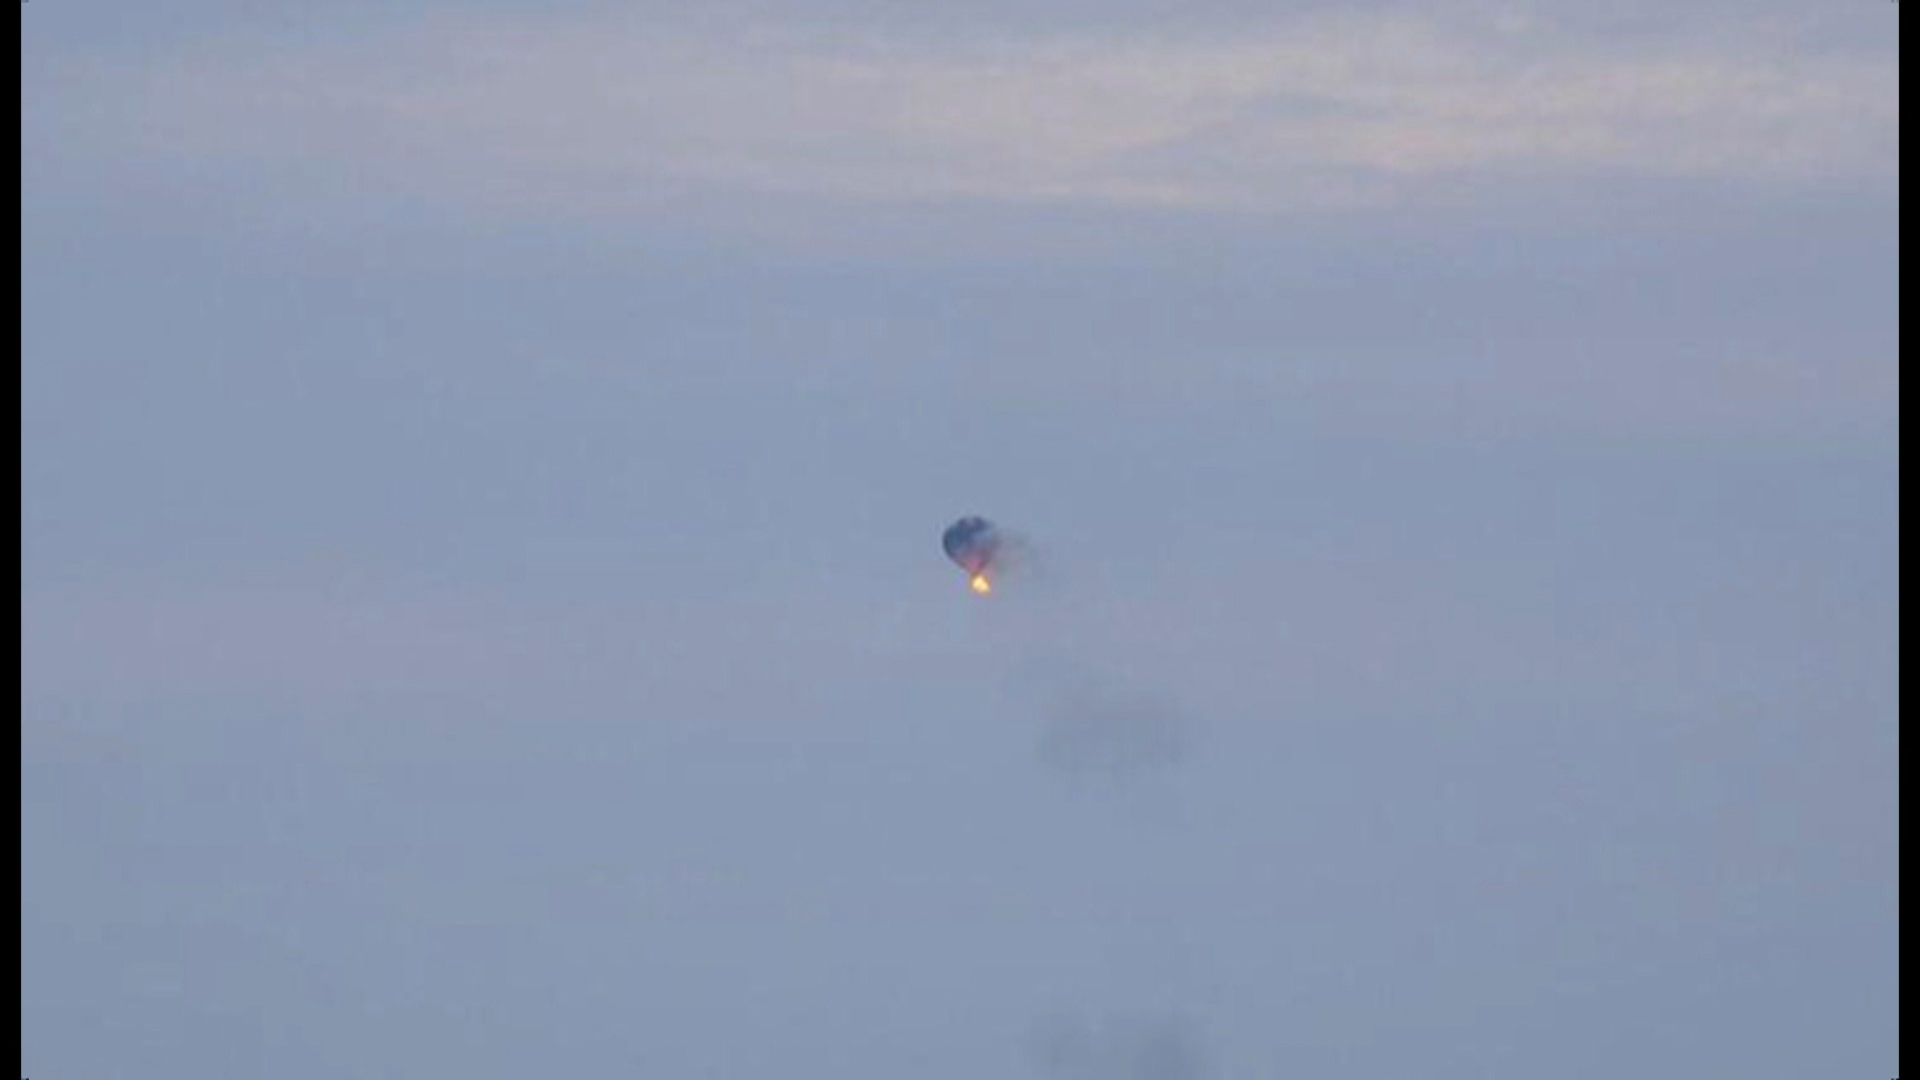 how deadly is air ballooning fatalities are rare stats show